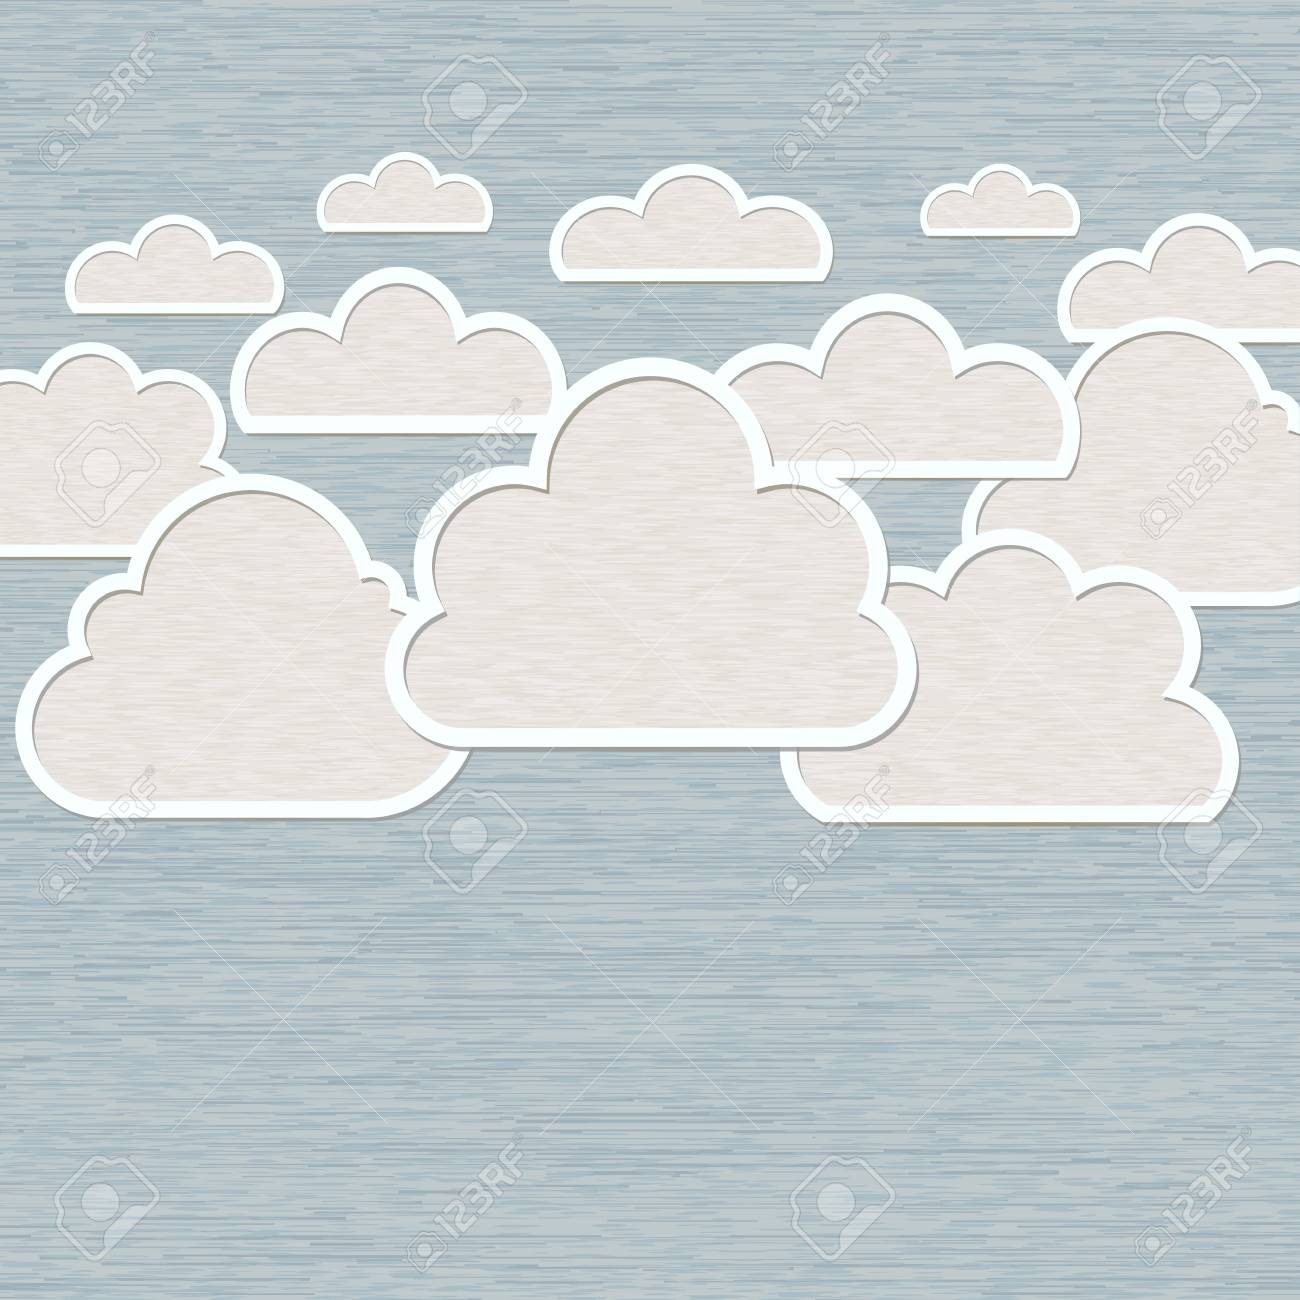 Abstract Cloud on blue background Stock Vector - 20002497